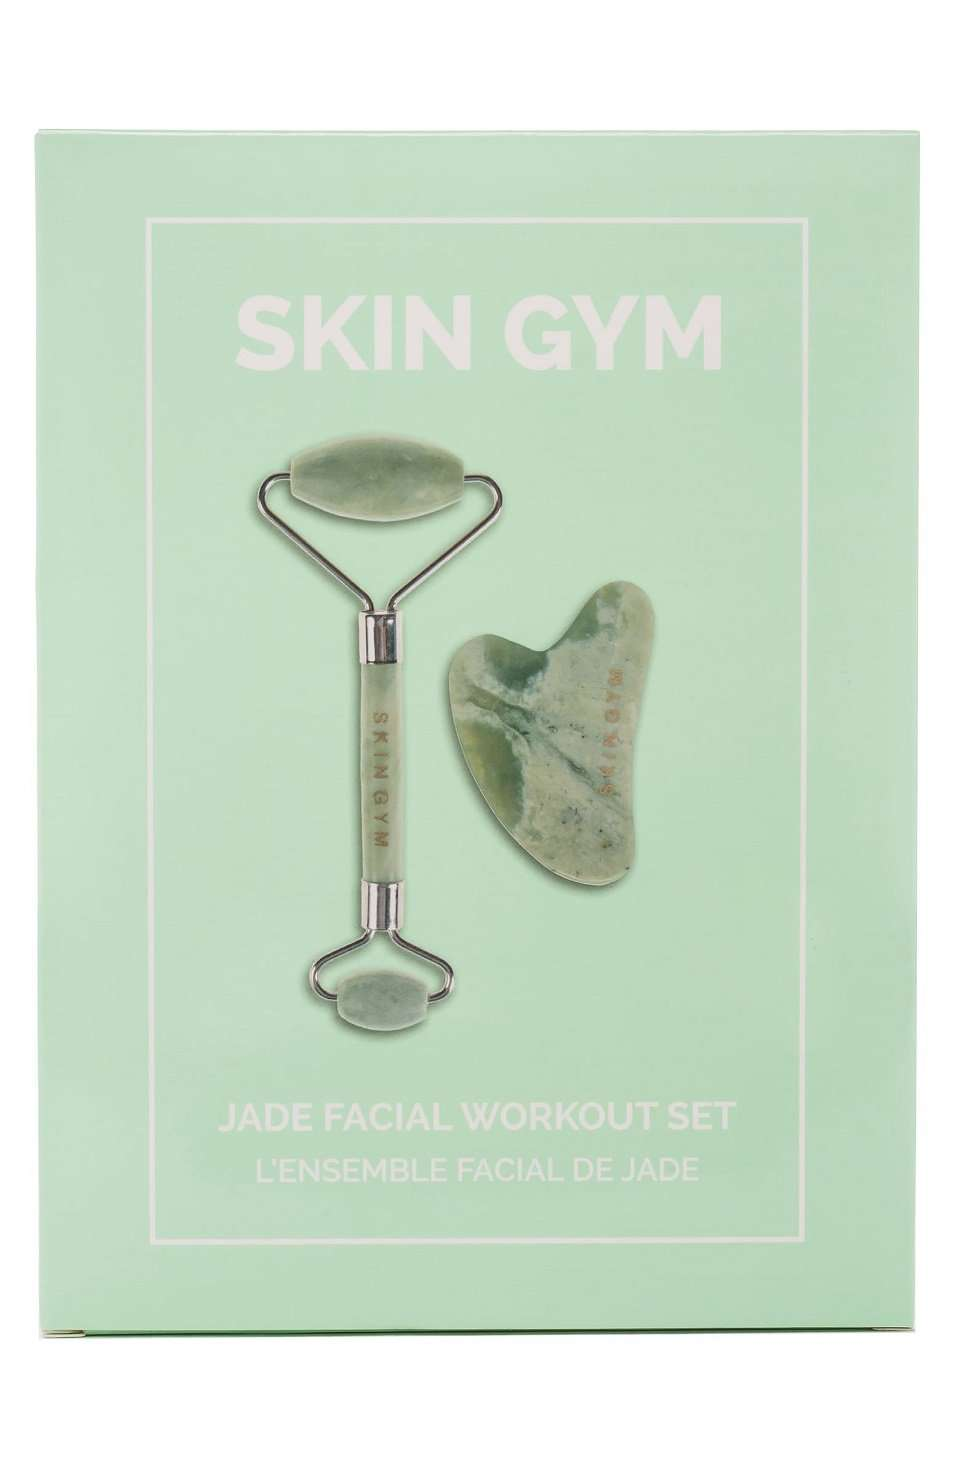 The Jade Workout Set